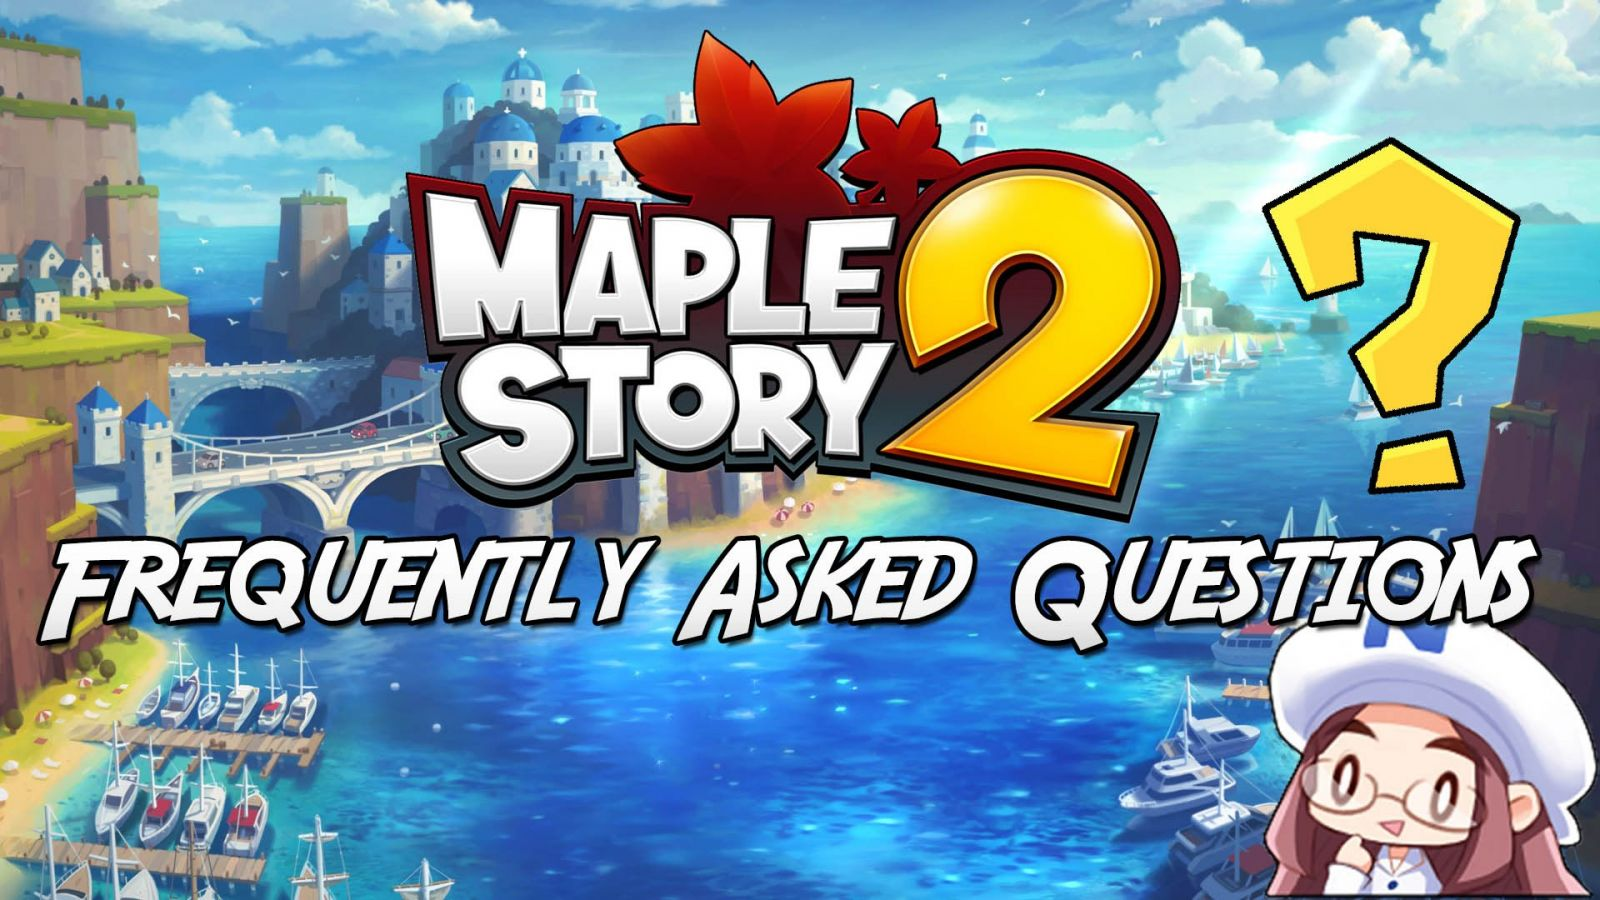 MapleStory 2 Frequently Asked Questions